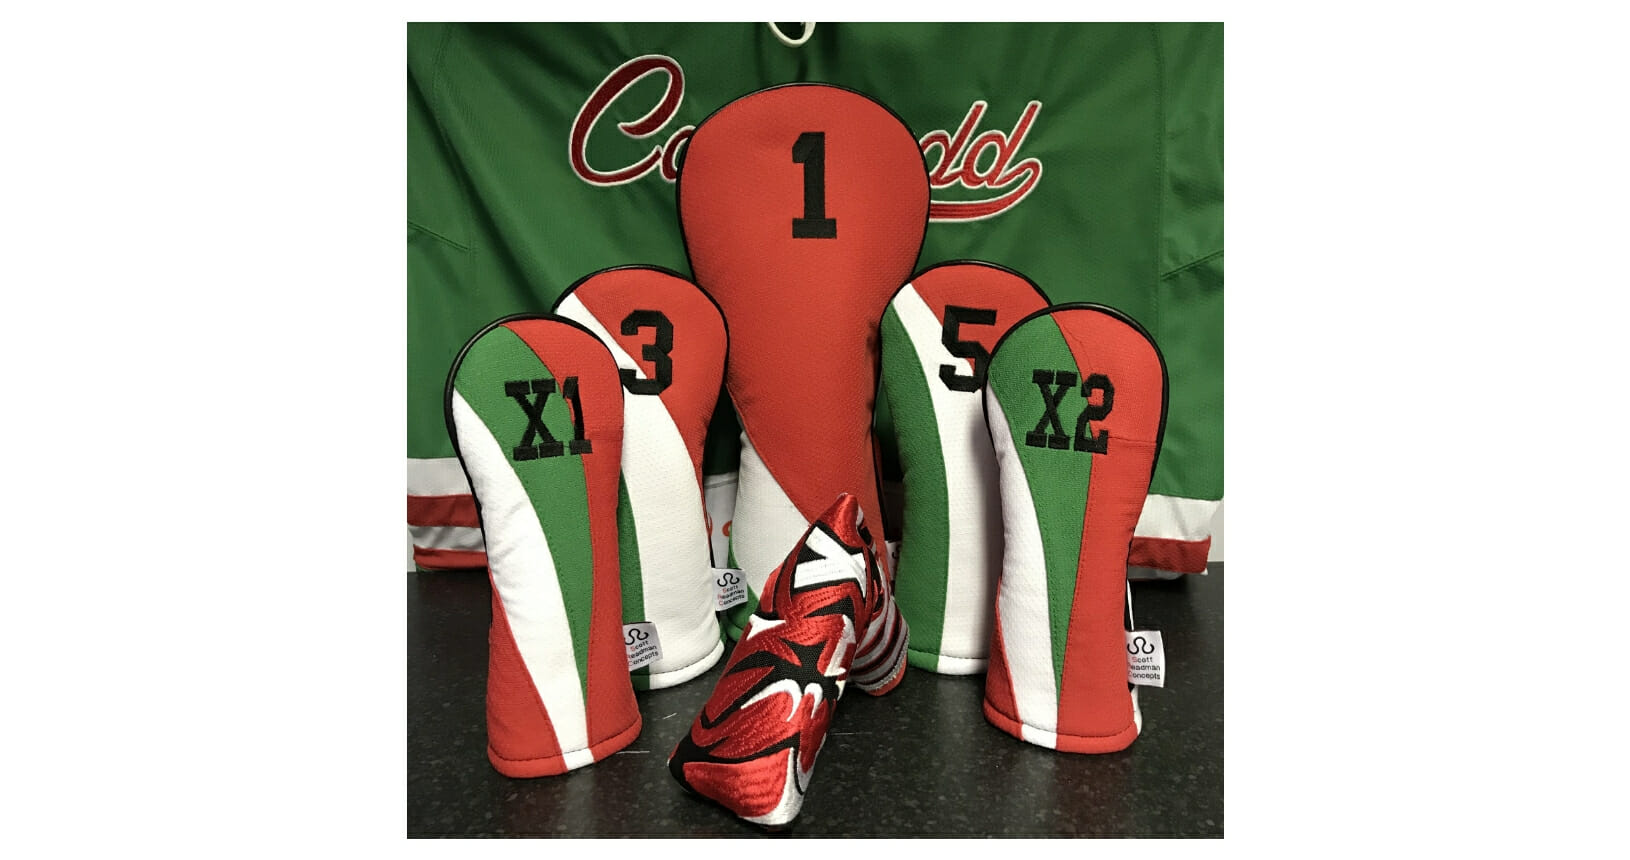 golf-shop-bespoke-custom-personalised-headcovers-putters-hockey-jersey-shop